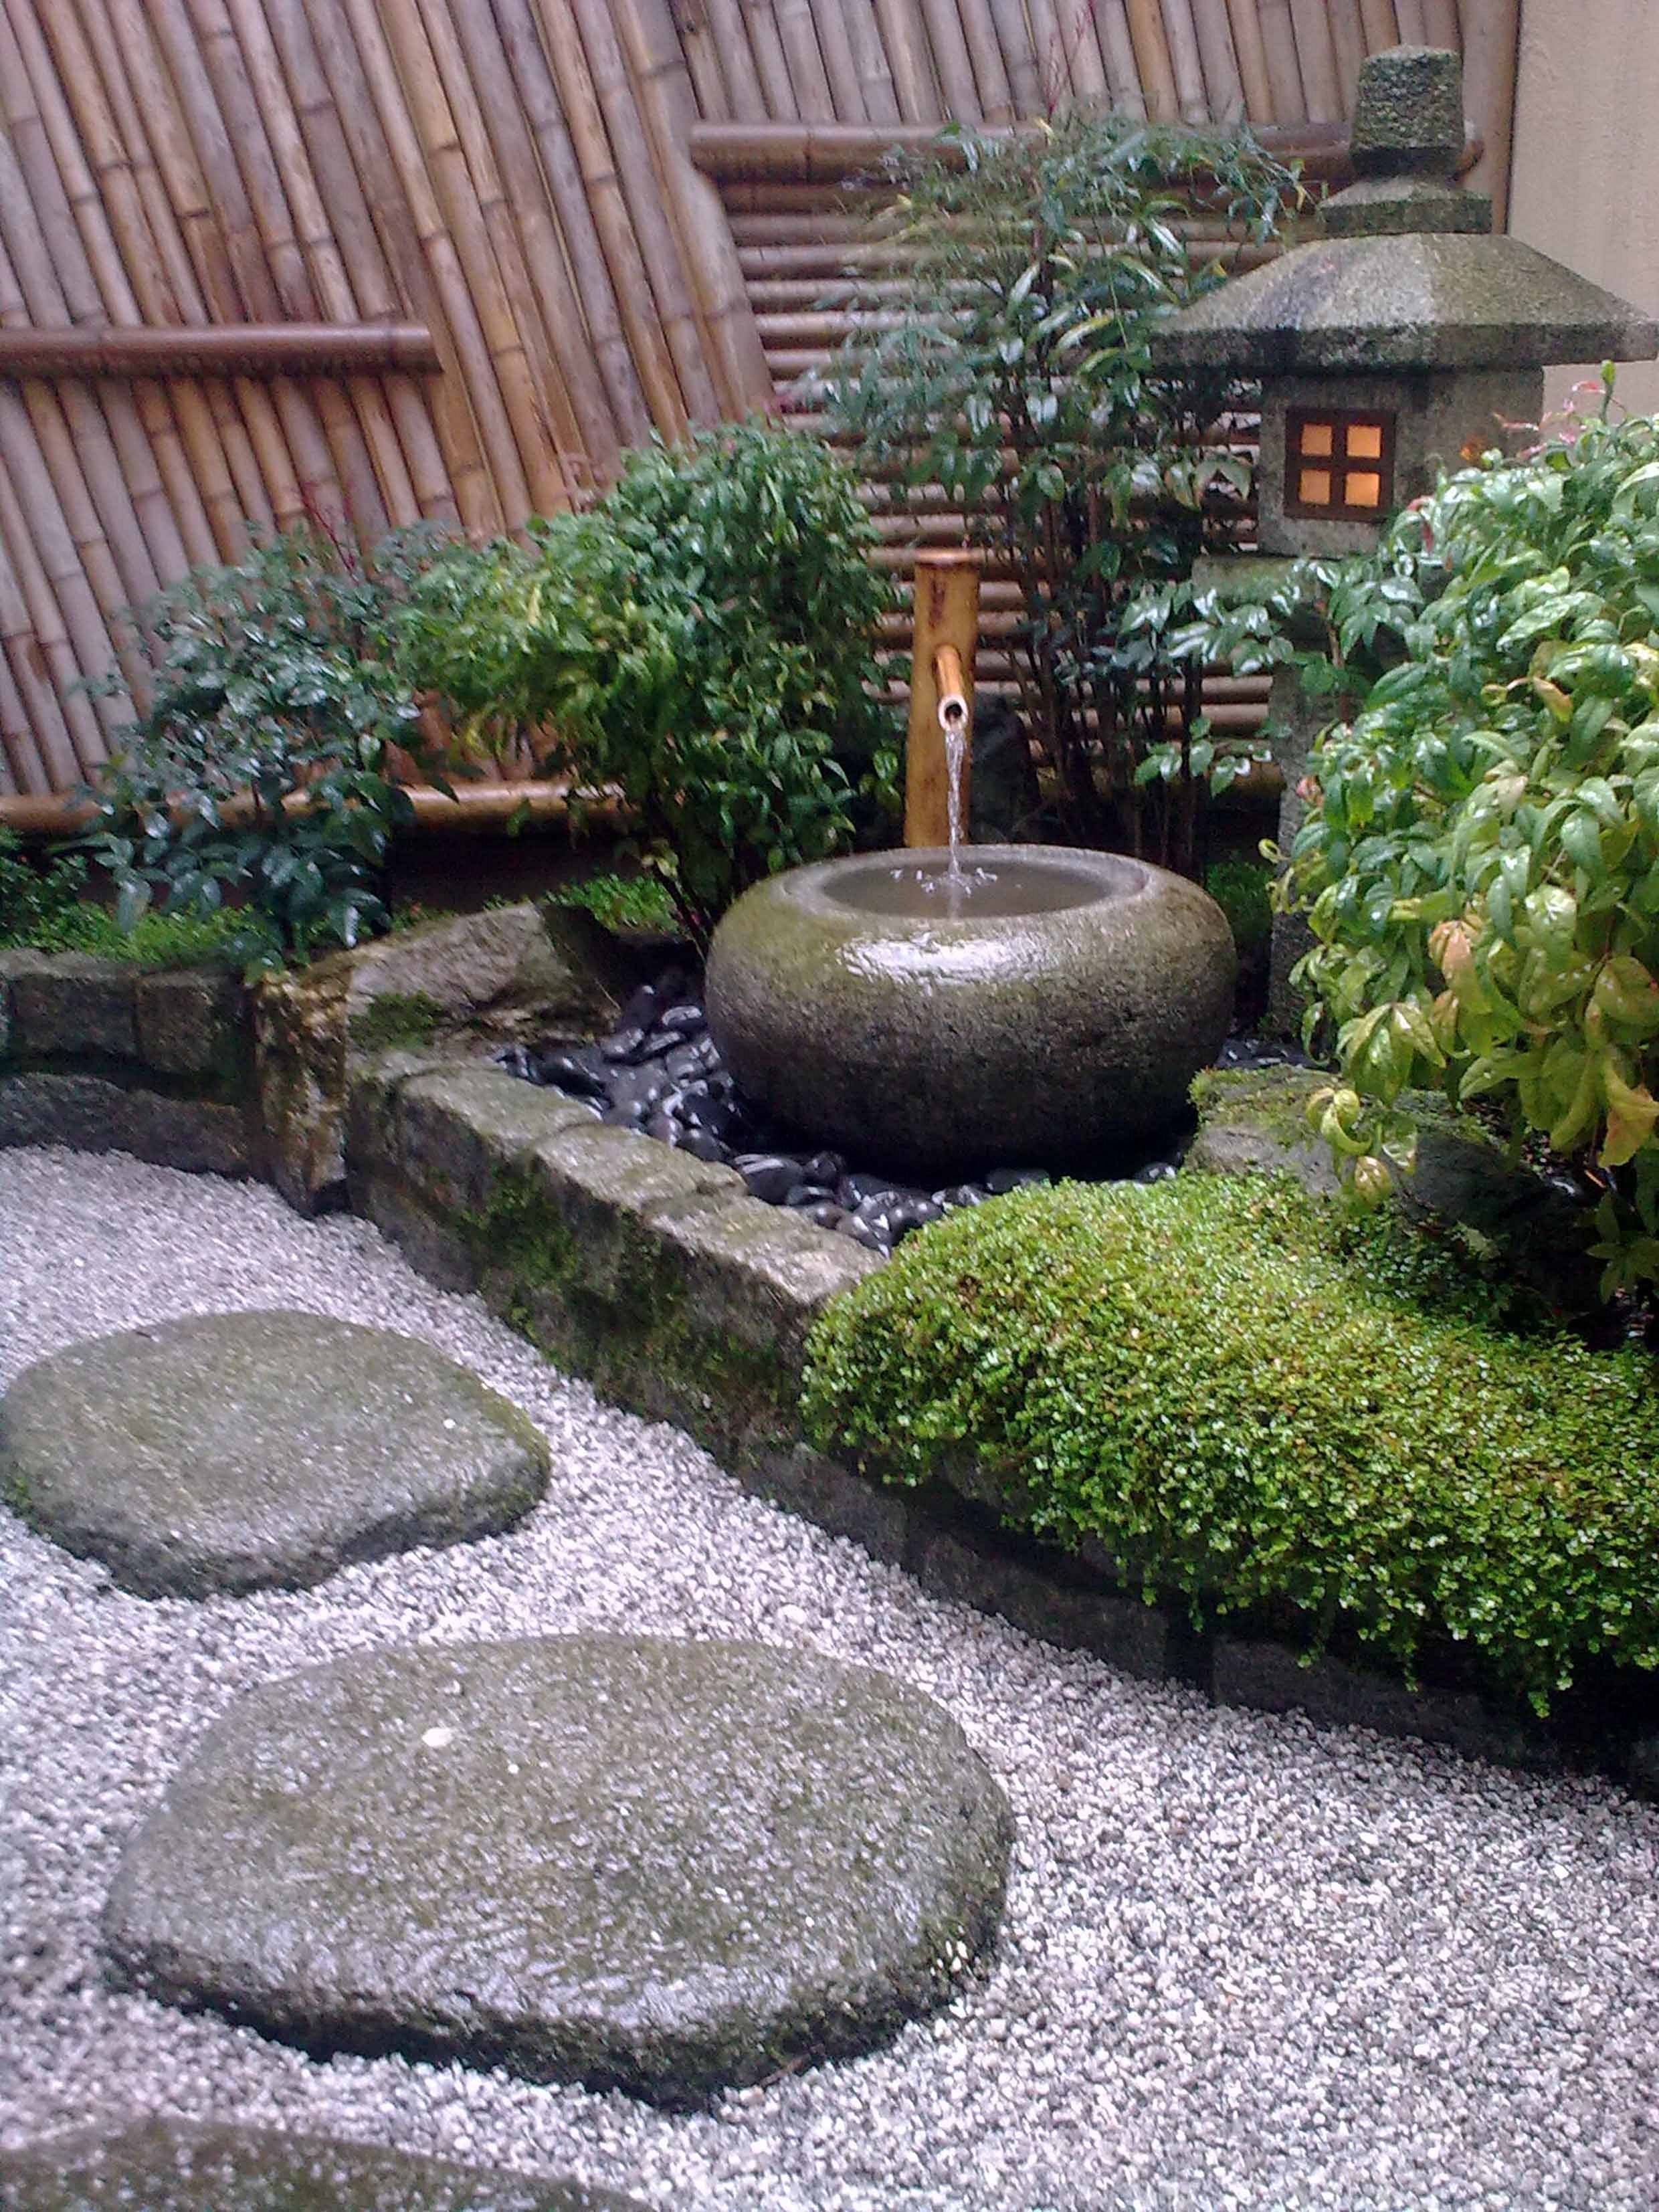 76 Beautiful Zen Garden Ideas For Backyard 400 Japanese Garden Landscape Courtyard Gardens Design Small Japanese Garden